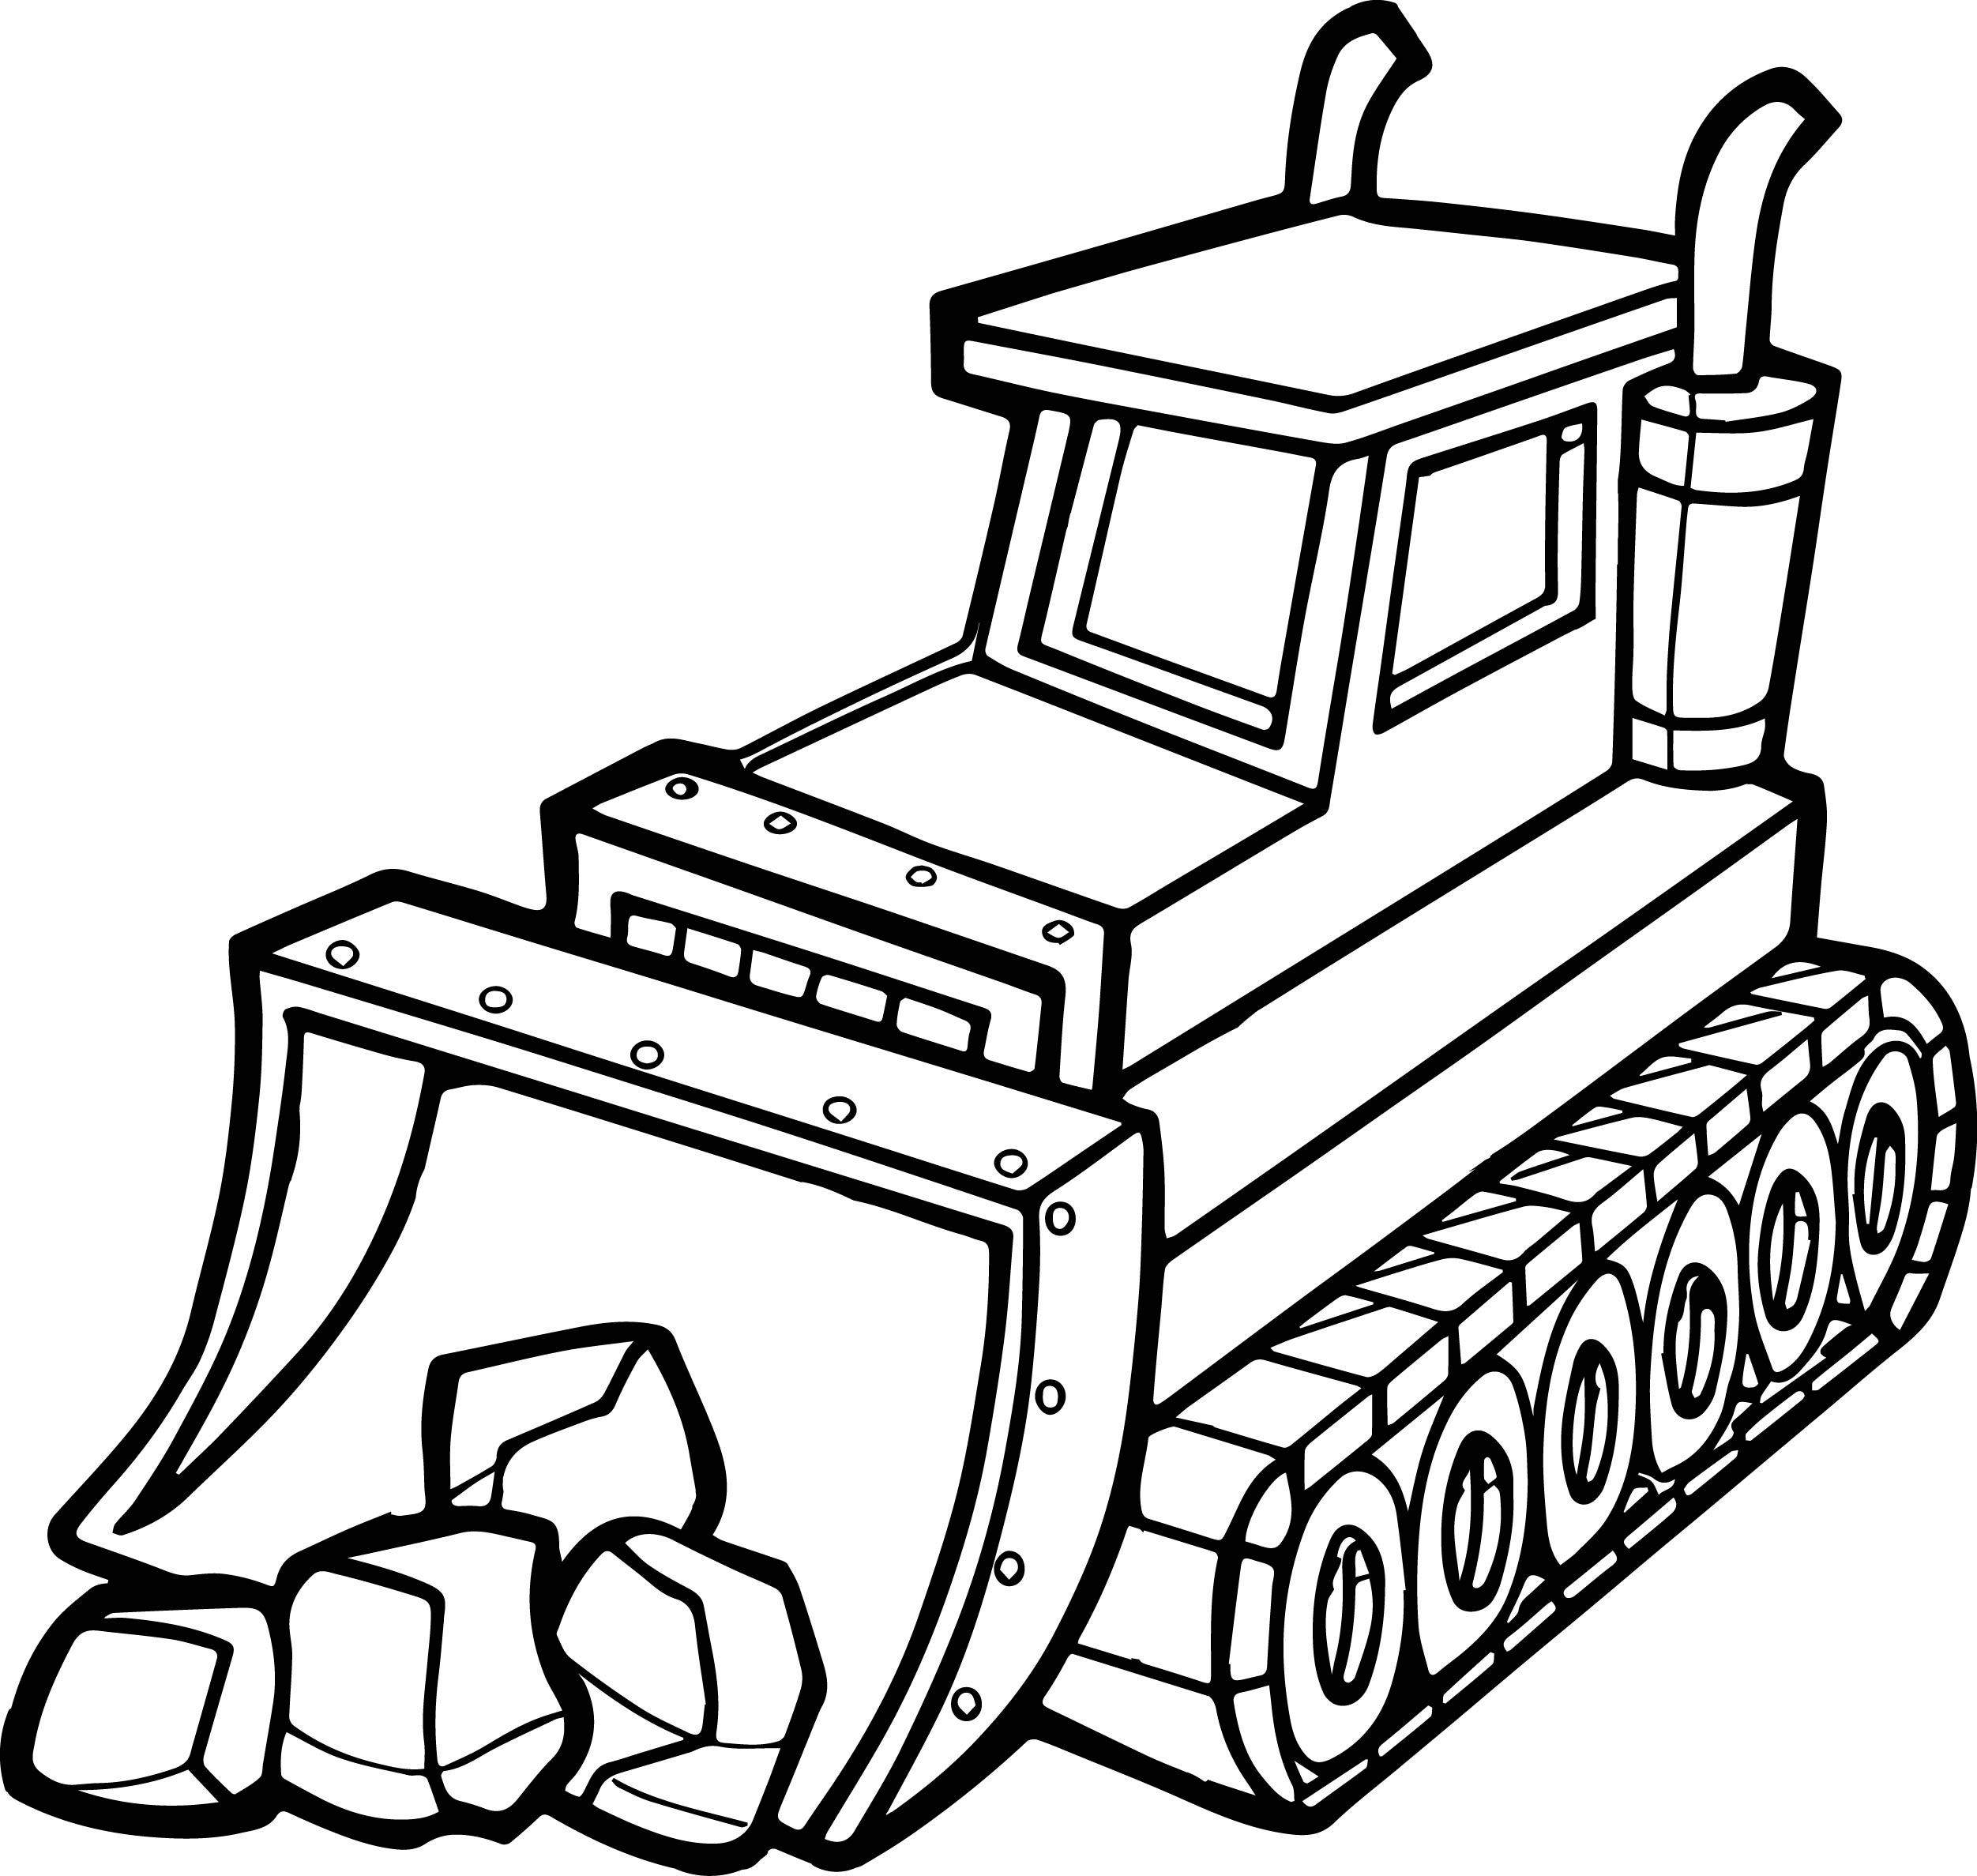 bull dozer coloring pages - photo#6